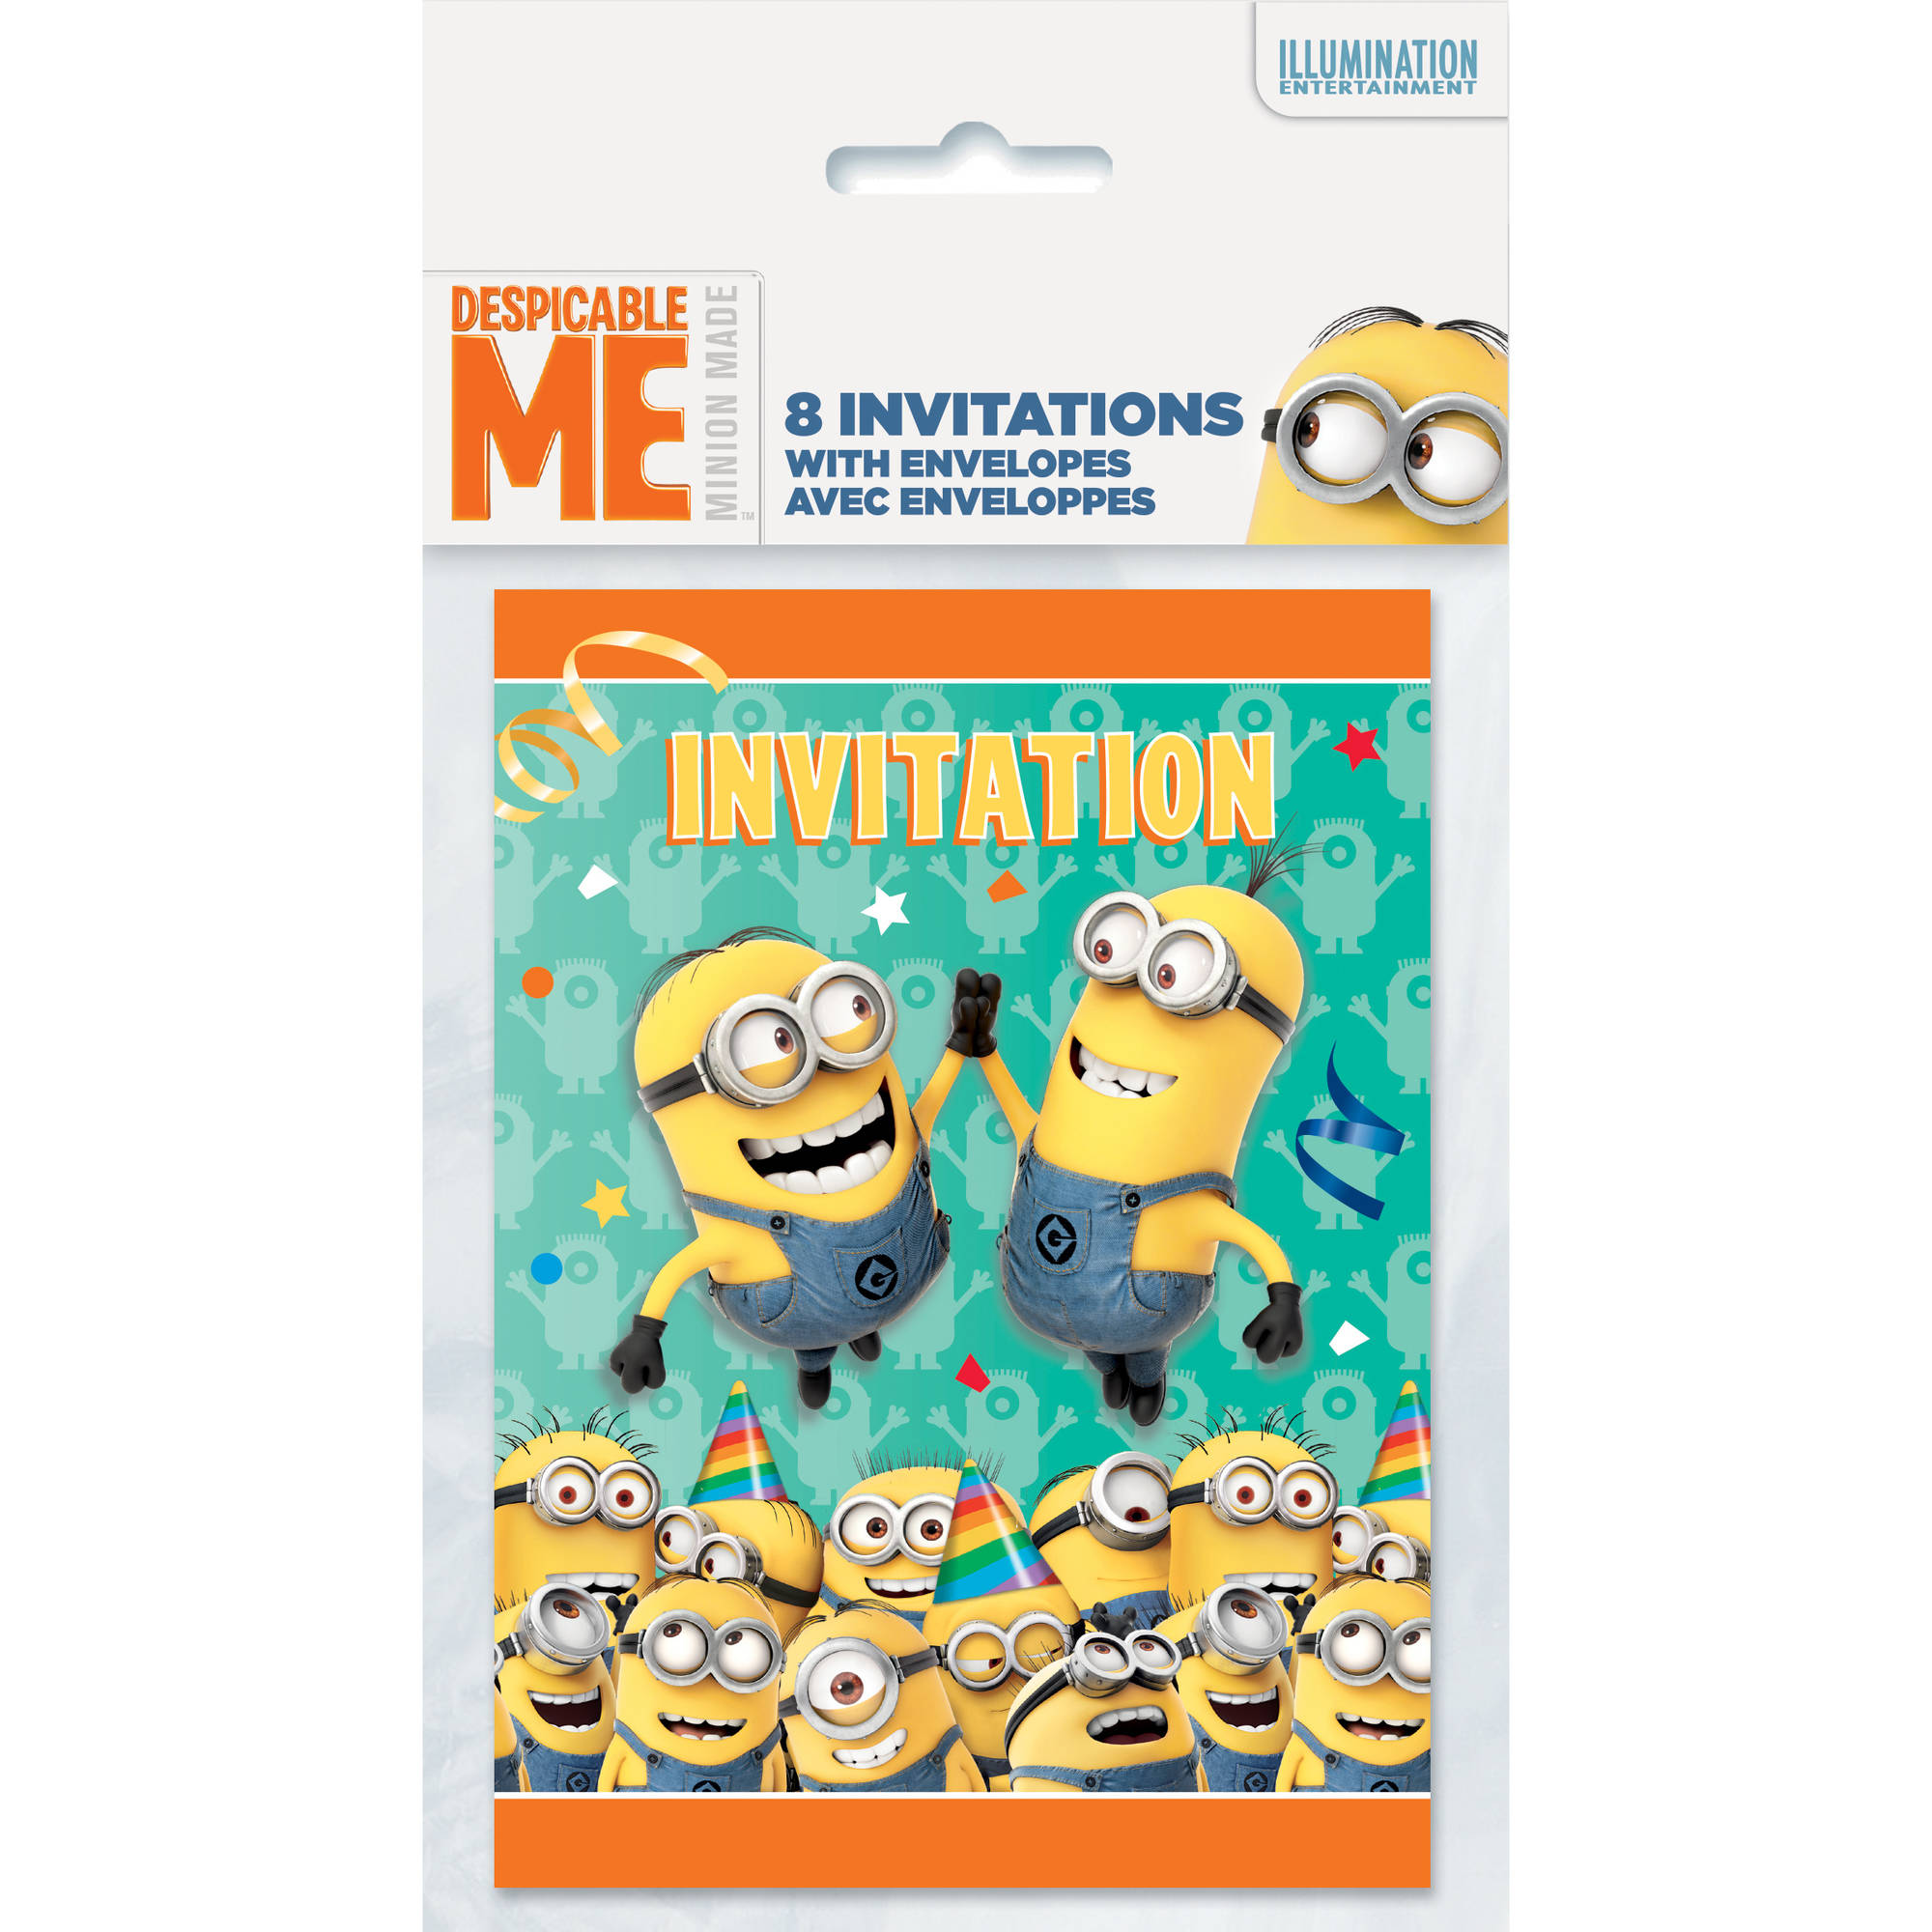 Despicable Me Minions Invitations 8ct Walmartcom